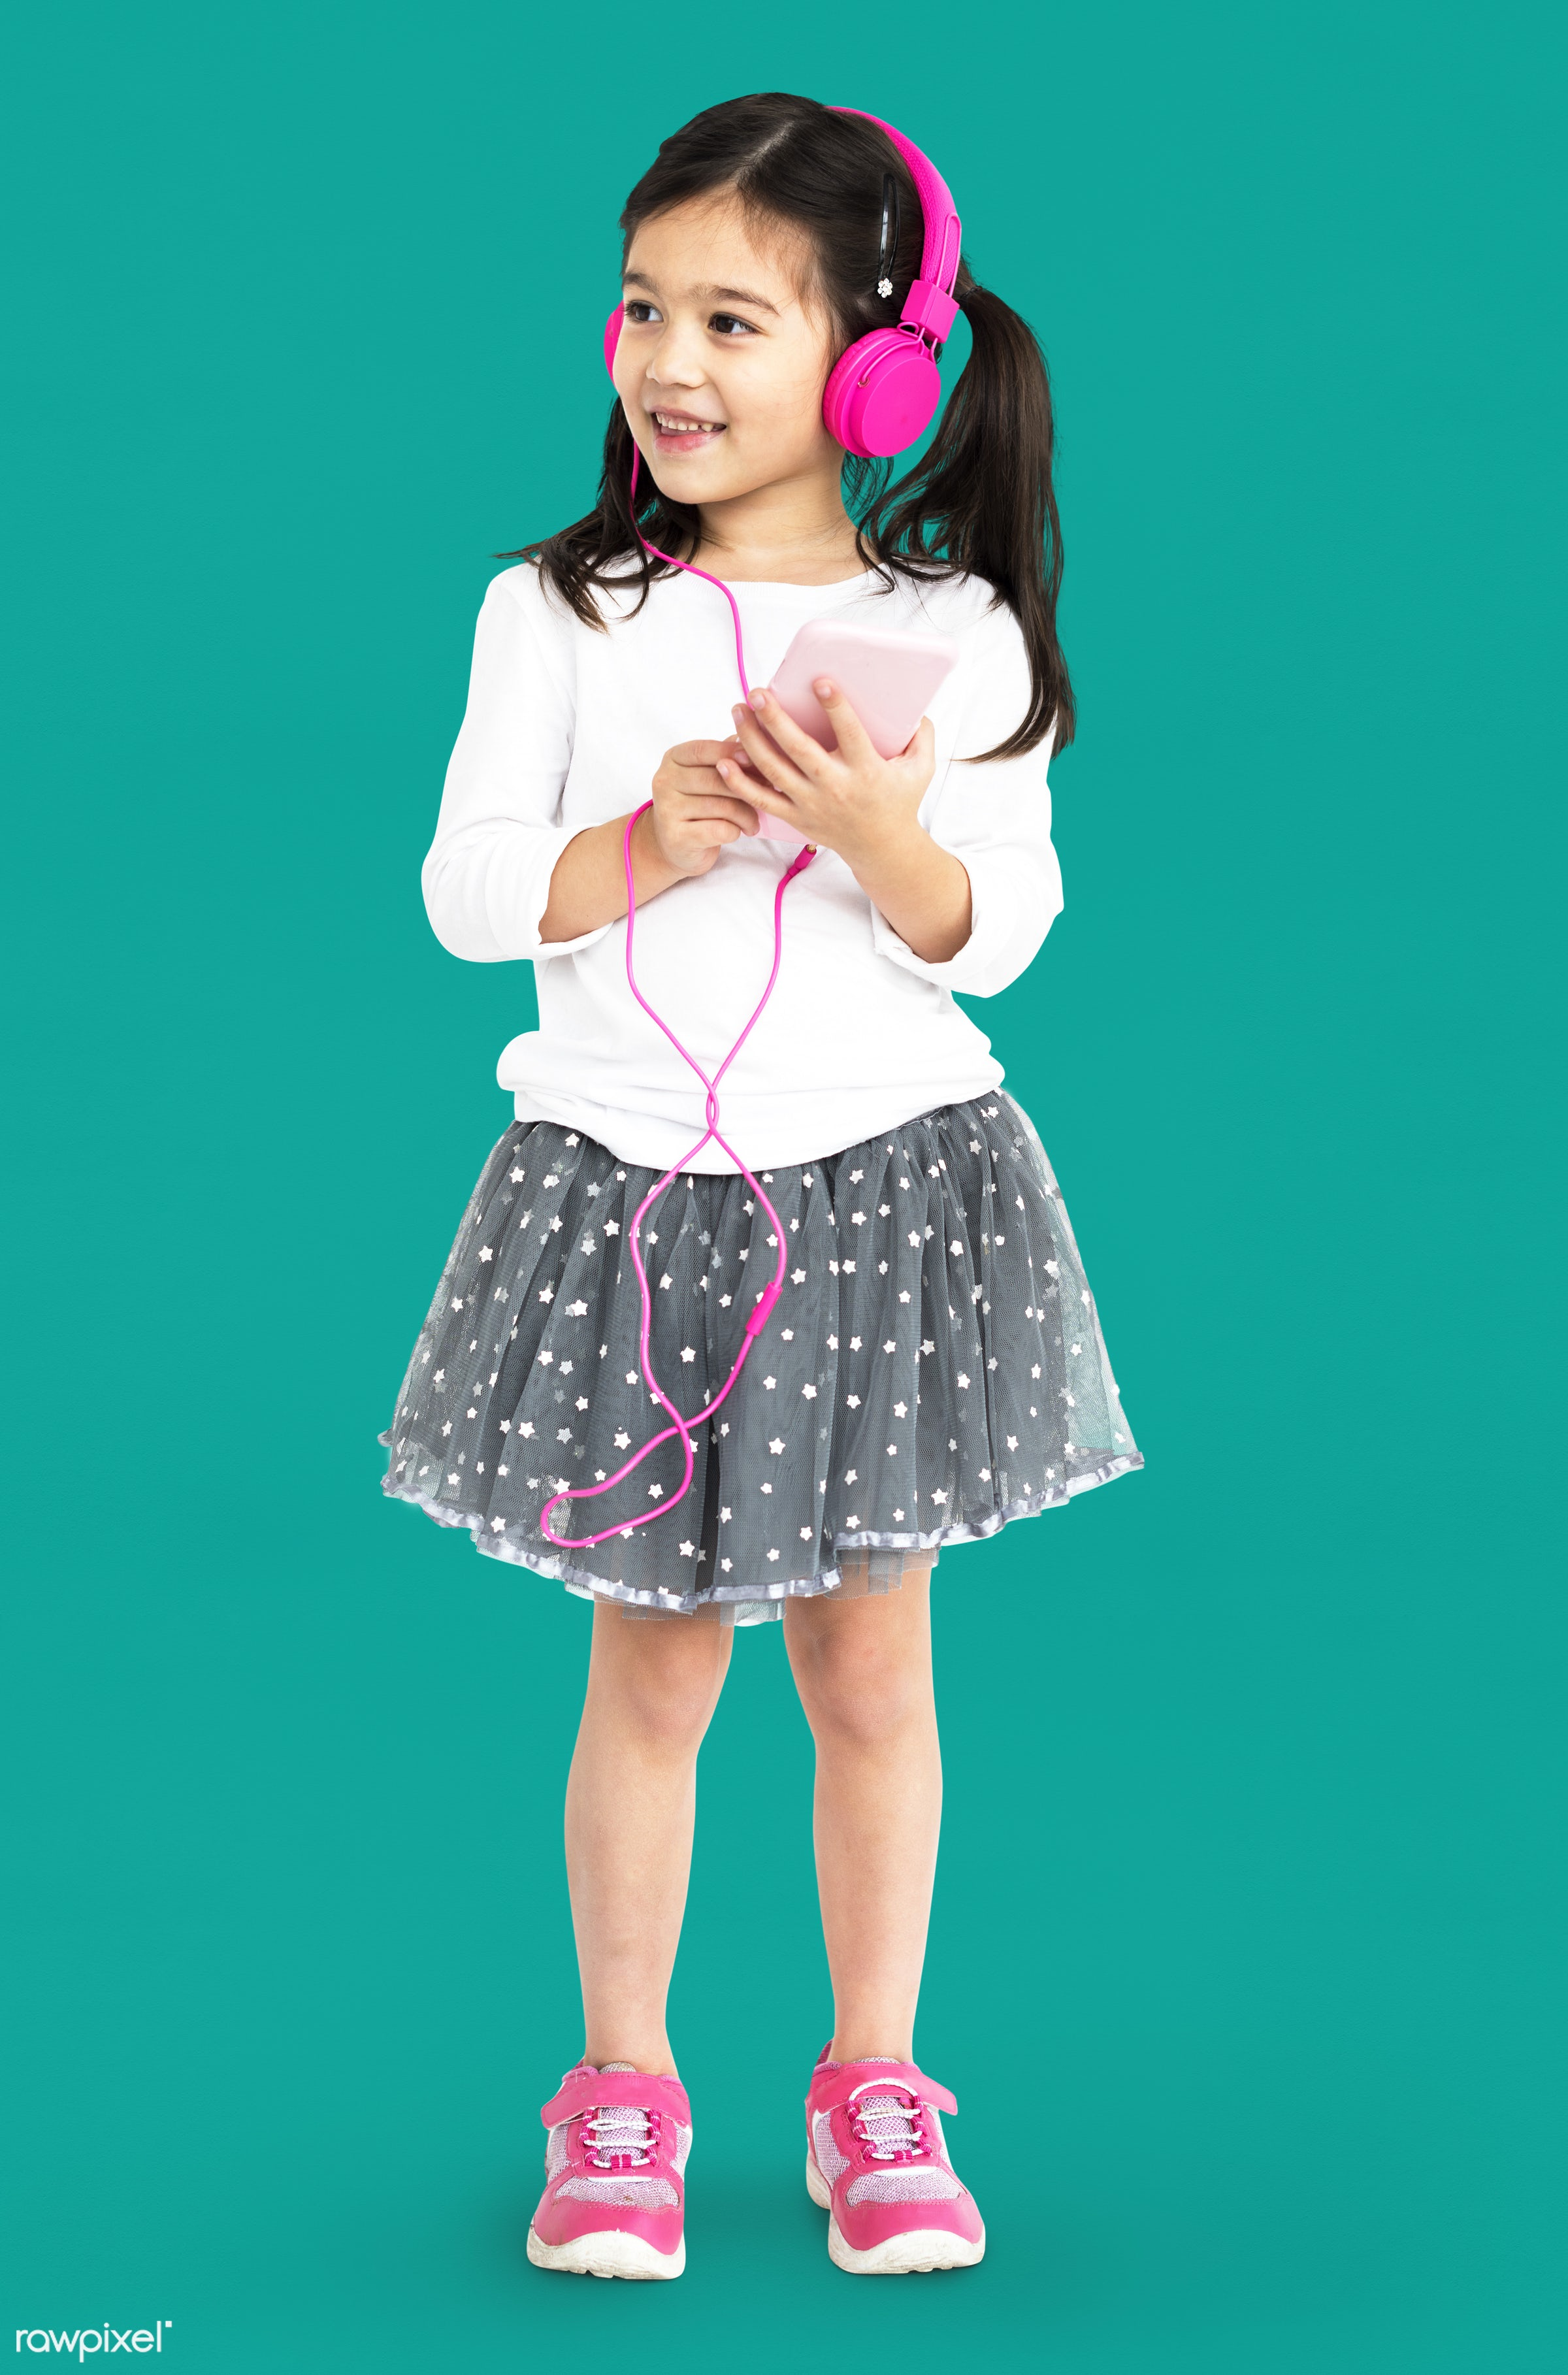 studio, expression, using, person, technology, full length, little, recreation, people, kid, childhood, smart phone,...